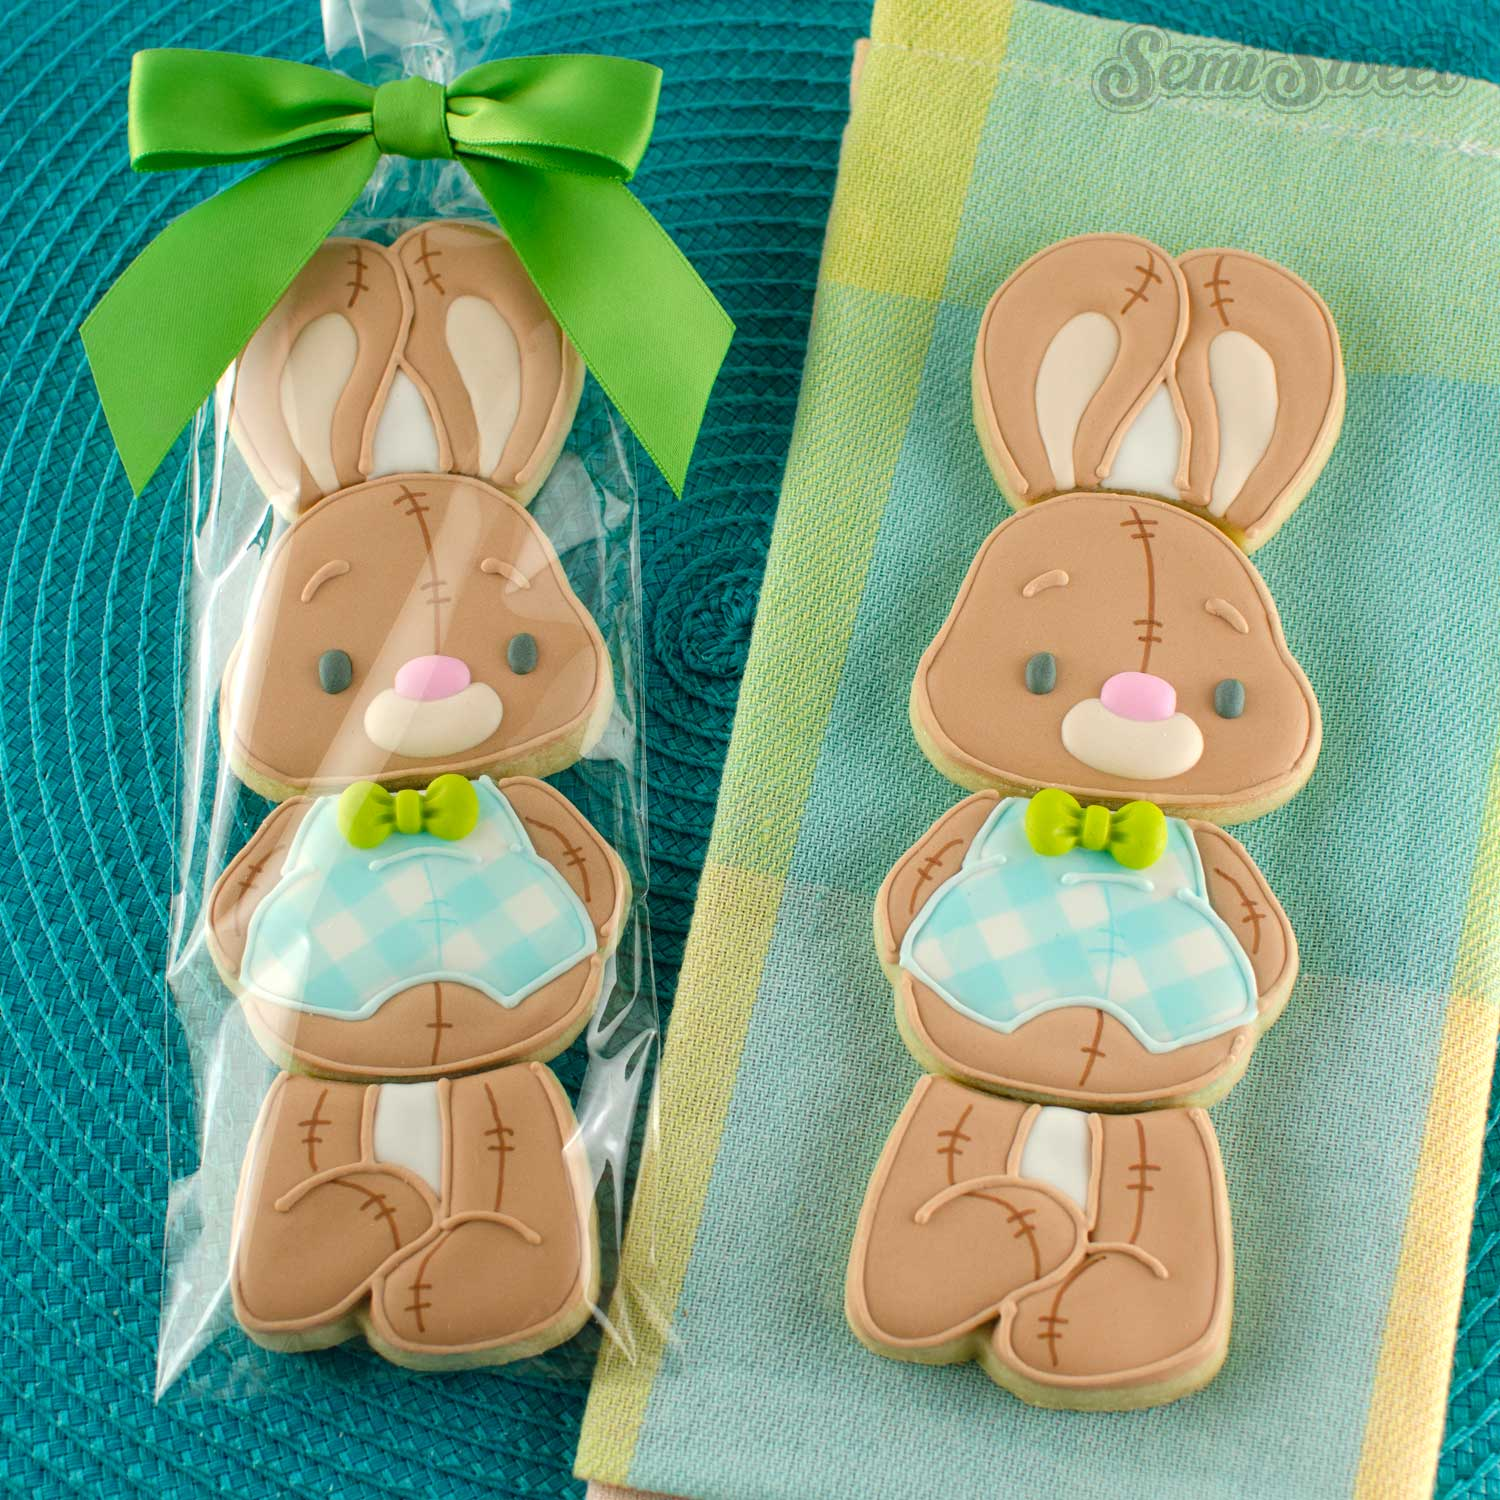 Stackable Bunny Cookie Set Minis | Semi Sweet Designs